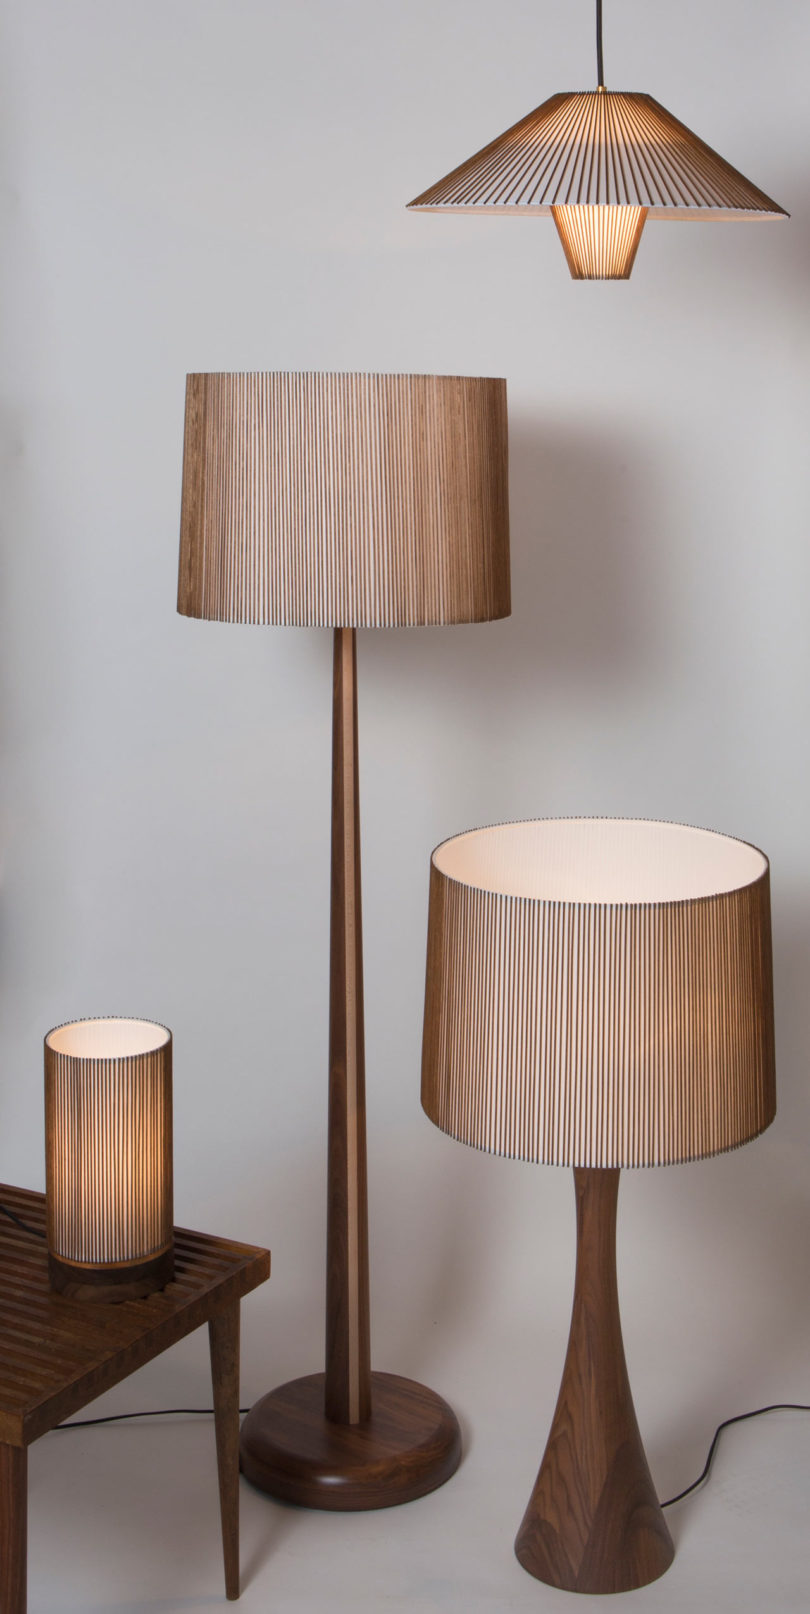 Tall table lamps at home and interior design ideas cool there are four designs being launched two table lamps a hanging pendant and a floor geotapseo Gallery